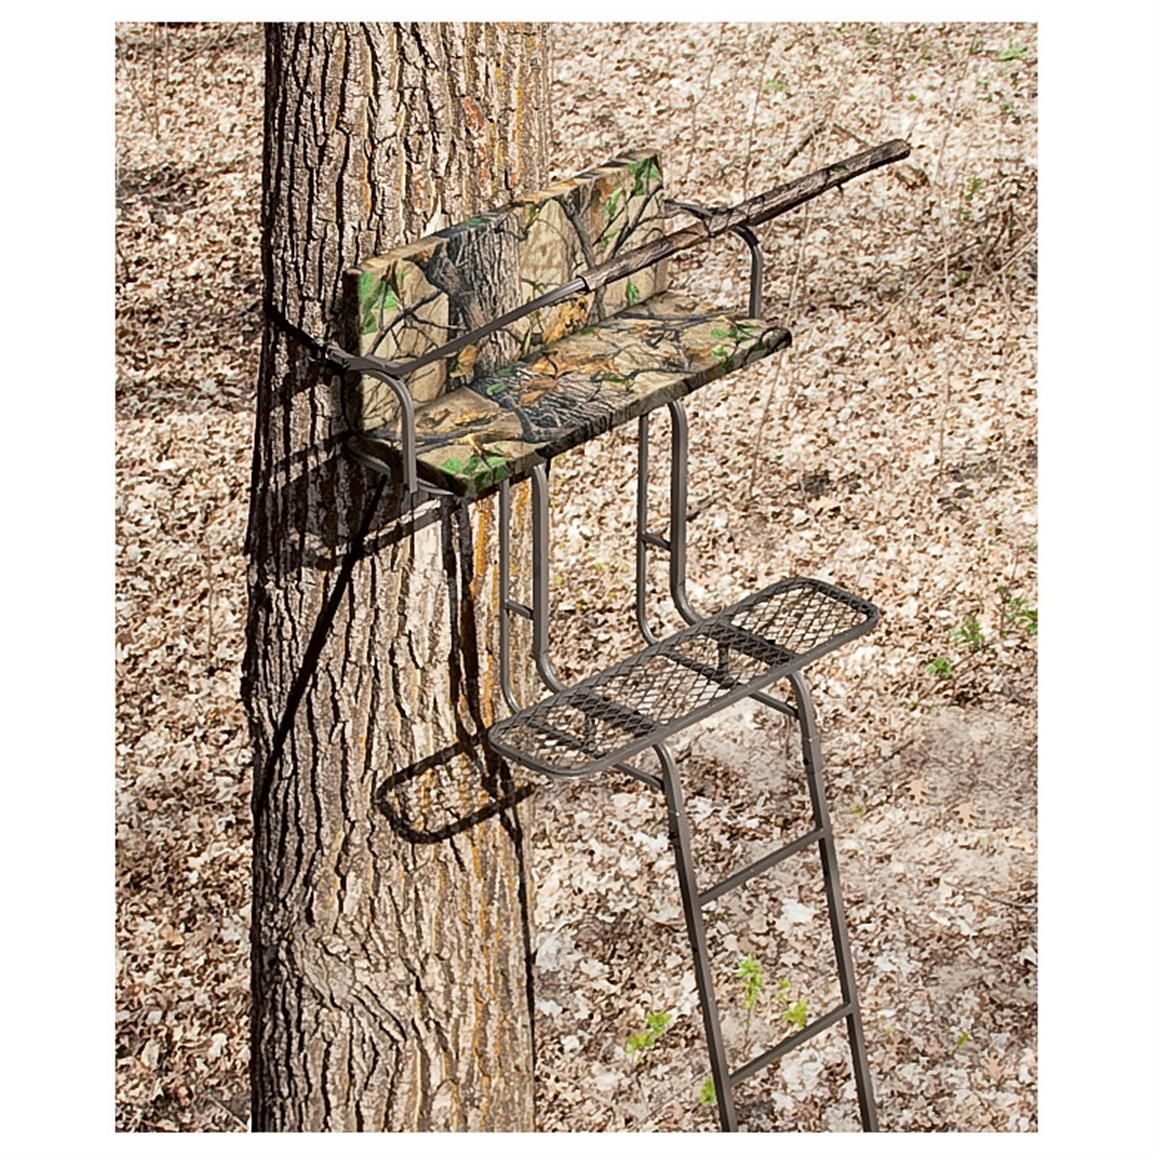 Sniper 15 Foot Deluxe 2 Man Ladder Stand Ladder Stands Ladder Tree Stands Tree Stand